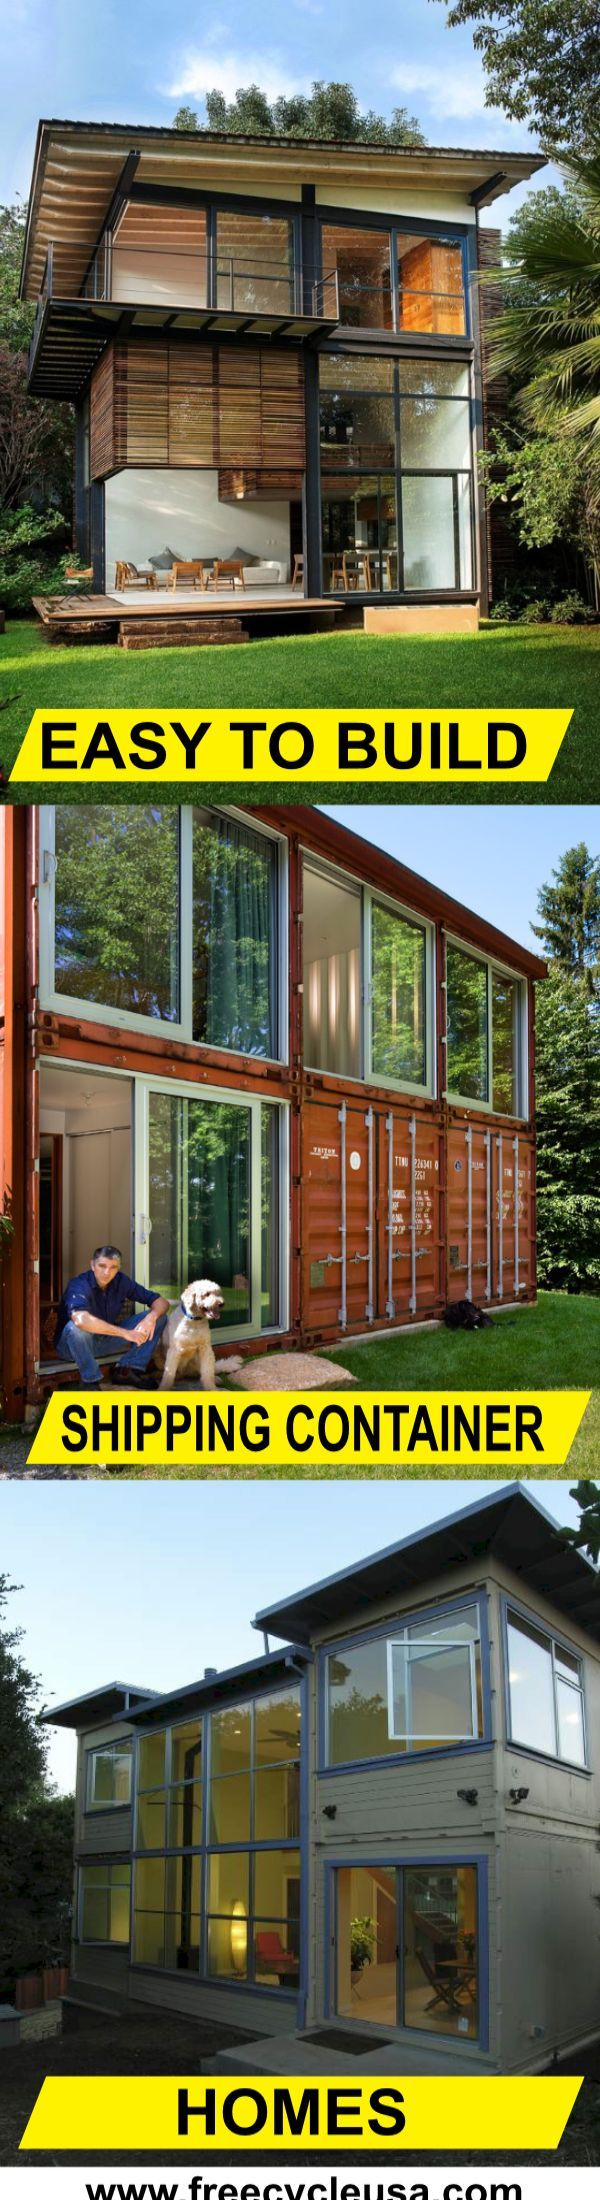 Lovely Lean How To Build A Shipping Container Home With The Best Plans Period.  #containerhome